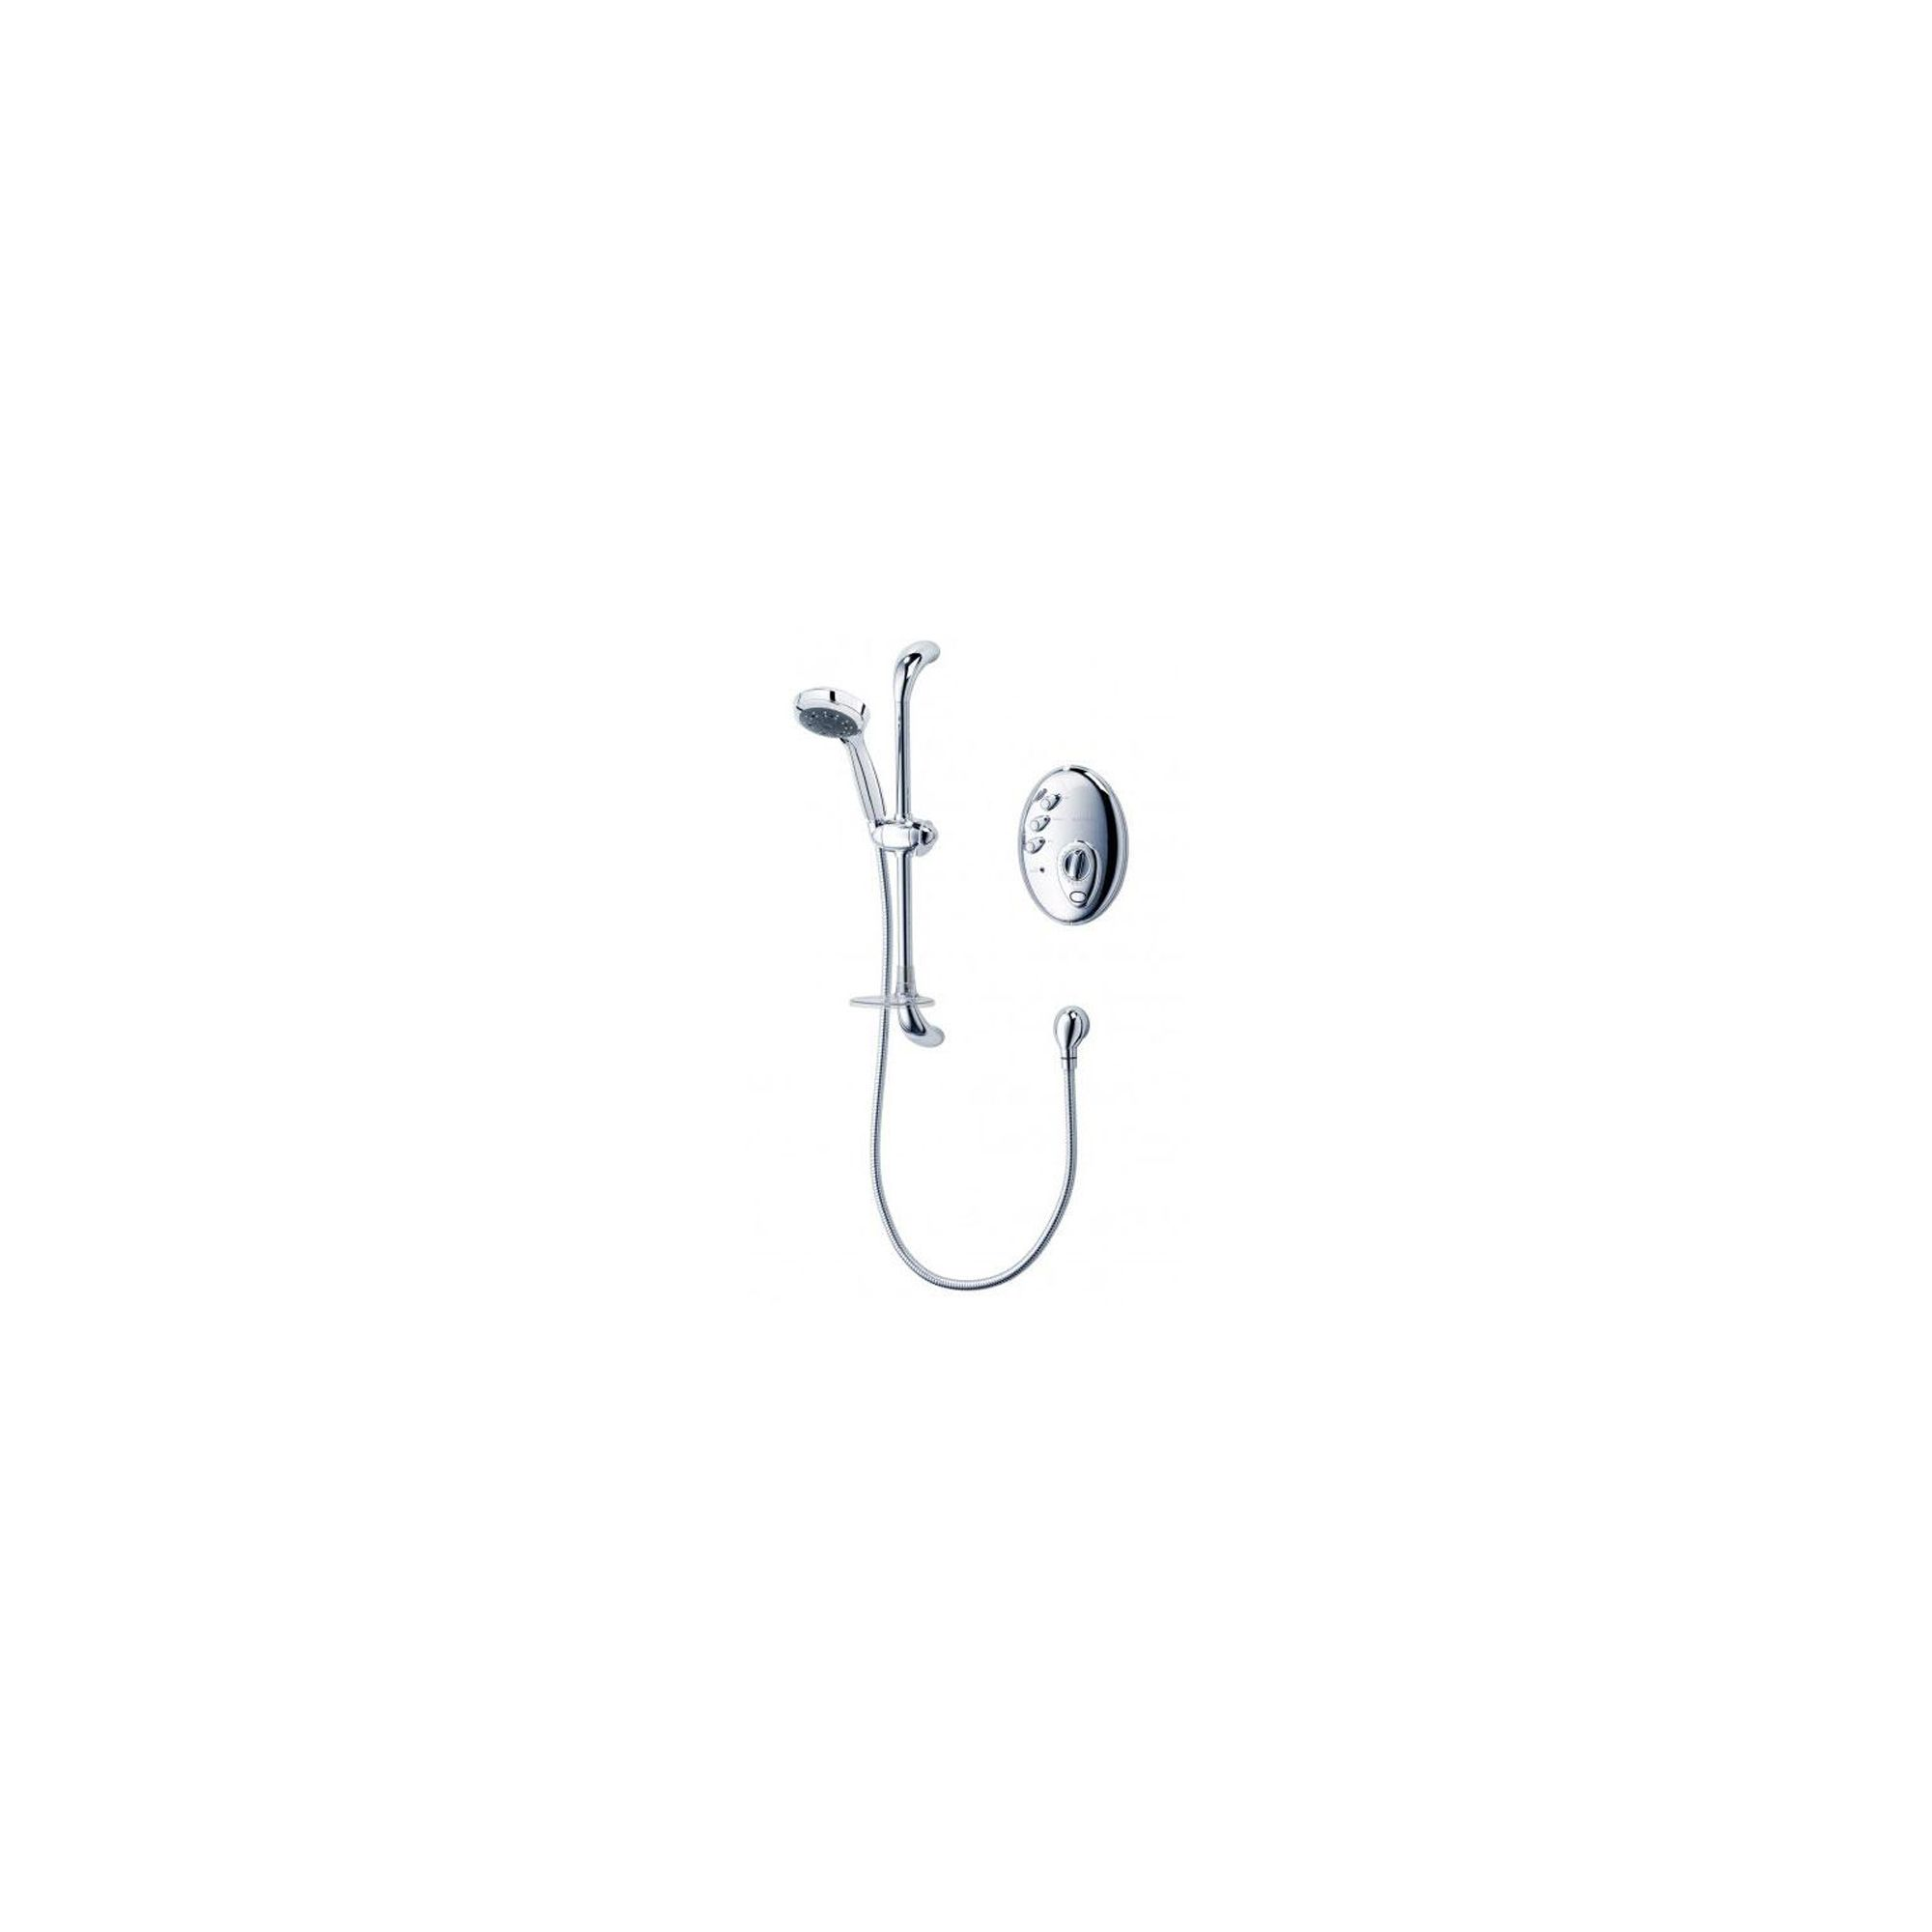 Triton Aspirante Digital Remote Electric Shower Chrome 10.5 kW at Tescos Direct